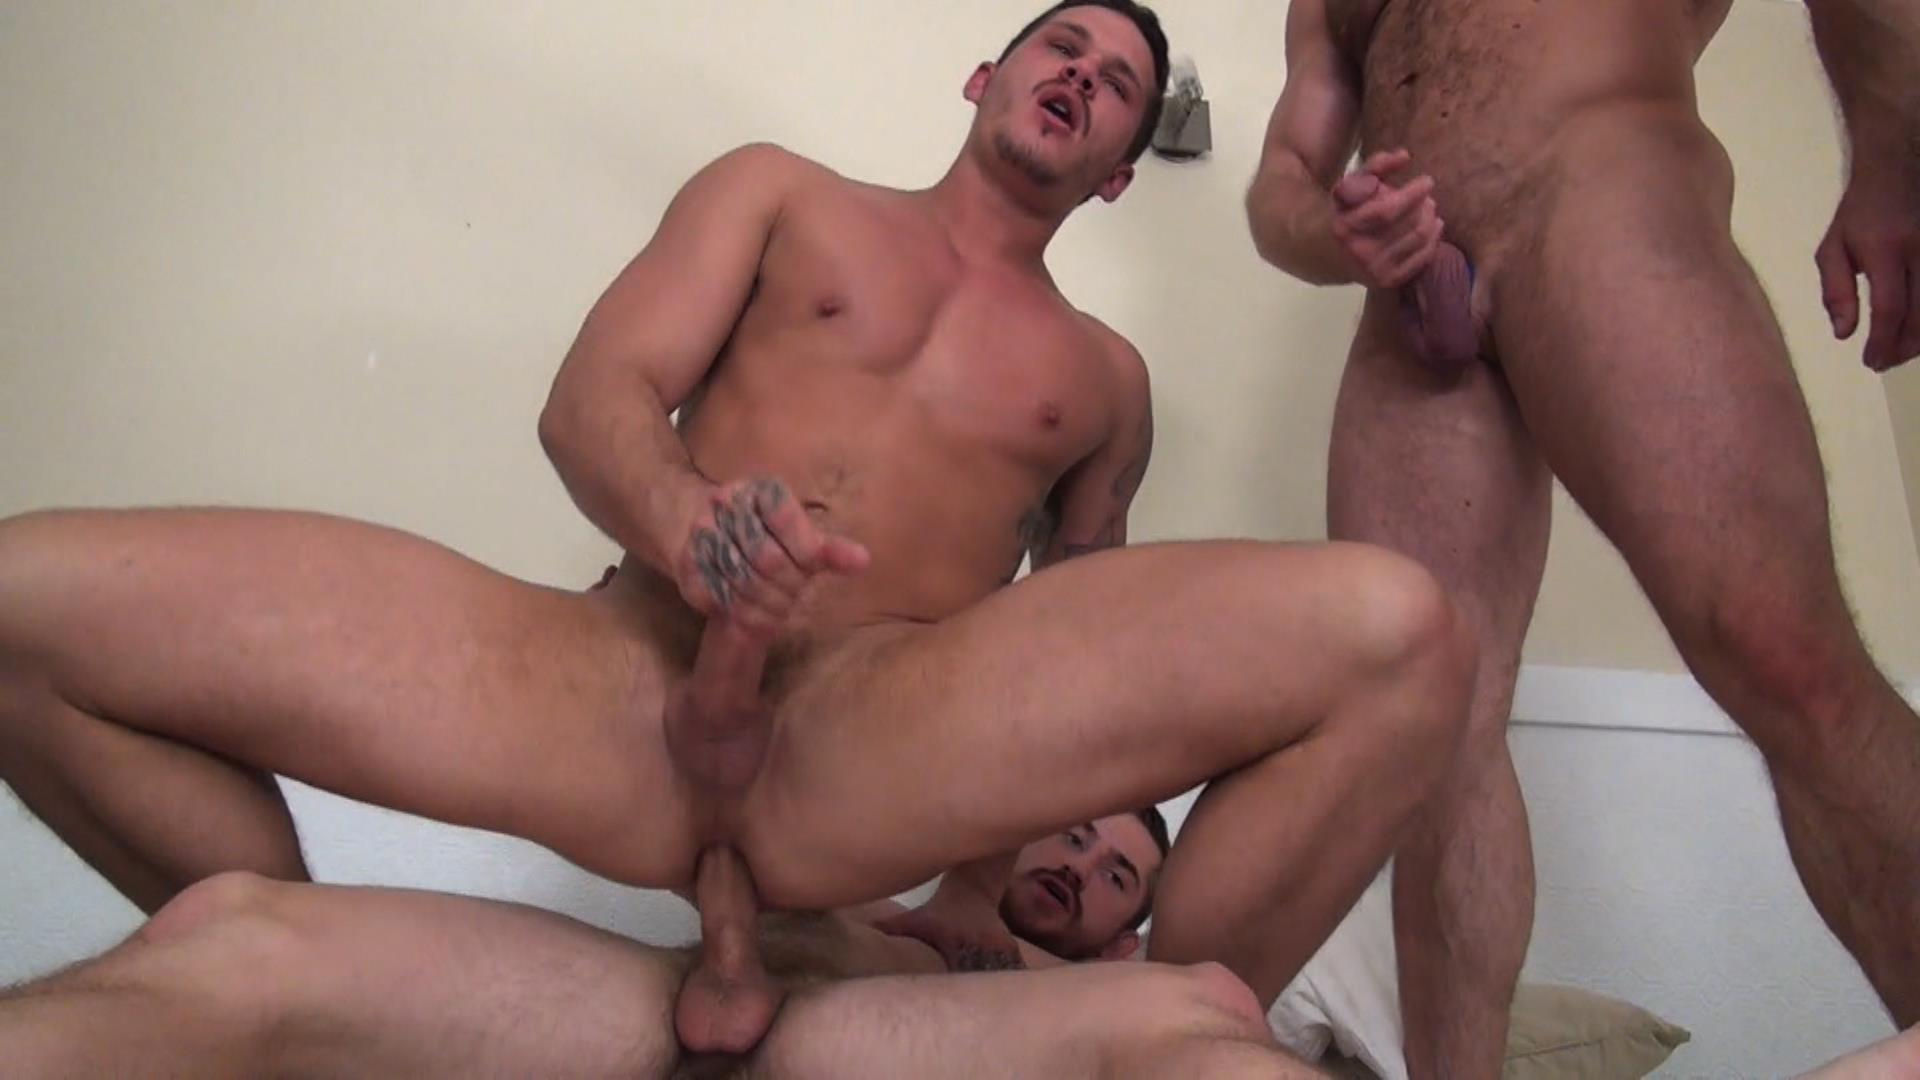 Raw-Fuck-Club-Dayton-OConnor-Tate-Ryder-Shay-Michaels-Adam-Russo-Bareback-Breeding-Amateur-Gay-Porn-3 Tate Ryder Gets Three Hairy Muscle Daddy Bareback Cocks